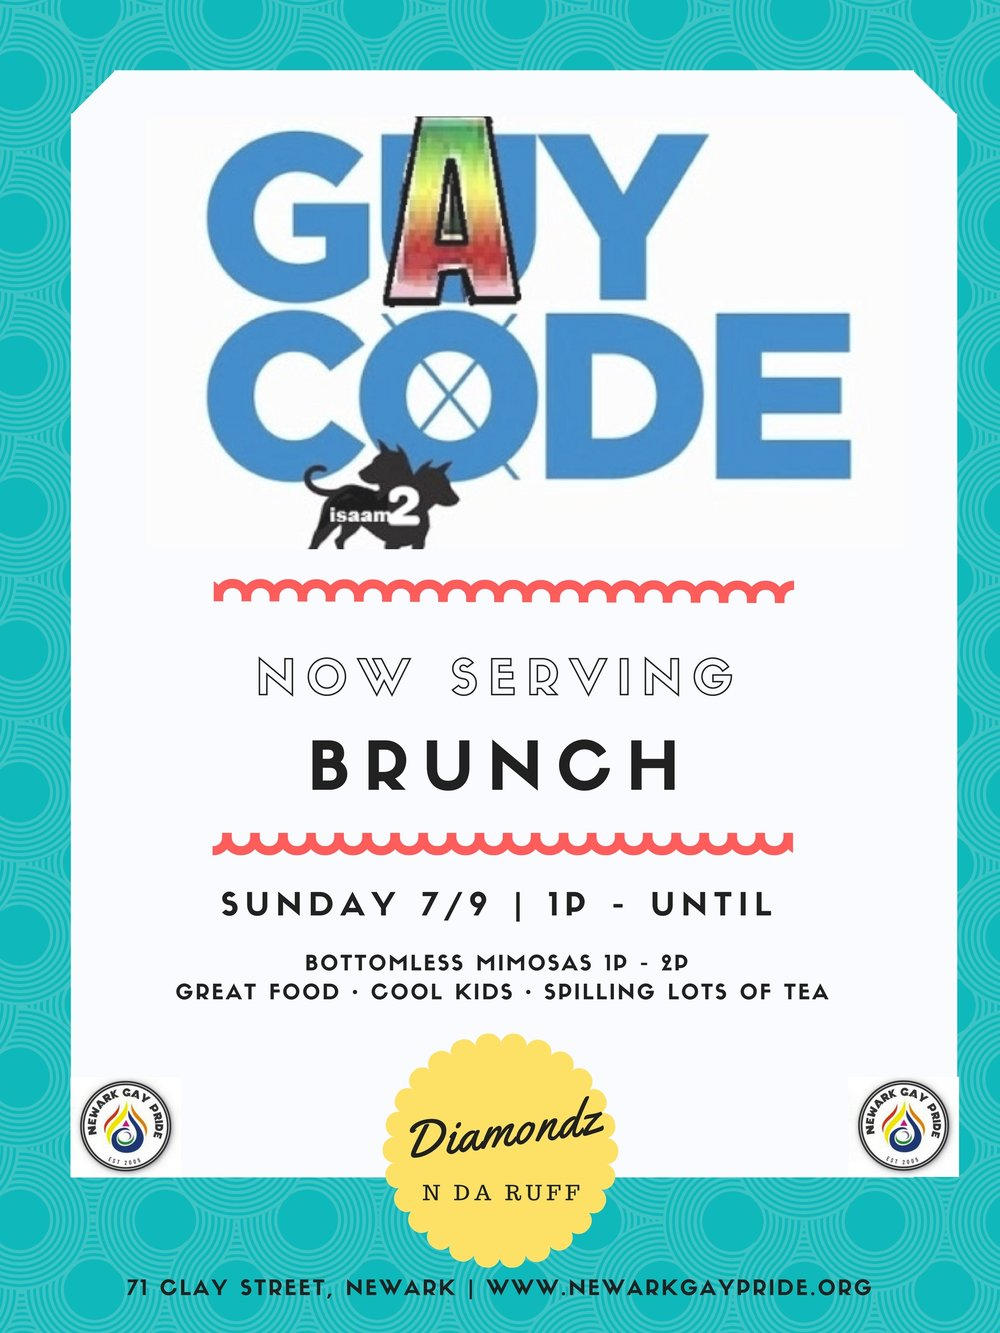 "Gay Code LIVE Brunch - Did someone say brunch?!? Come sip, chew and chat during aLIVE episode of GAY CODE!Hosted by show creator Isaam Sharef and featuring the cast of Gay Code - Julius McFly, Donnie Duright, Darnell Thomas, Dee Tranny Bear and Miya Mychalz:Gay Code is a bold and smart, male driven comedic web-series that is quickly becoming known as everyone's favorite gay uncle. From over the-top tips on how to use an enima, how to get straight boys off the chat line, or even how ""The PrEP pill"" can protect you from HIV. Gay Code features some of the biggest personalities in the LGBTQ community, laying down the laws of what is means to be gay, proud and most importantly....smart!*1st hour includes BOTTOMLESS MIMOSAS"